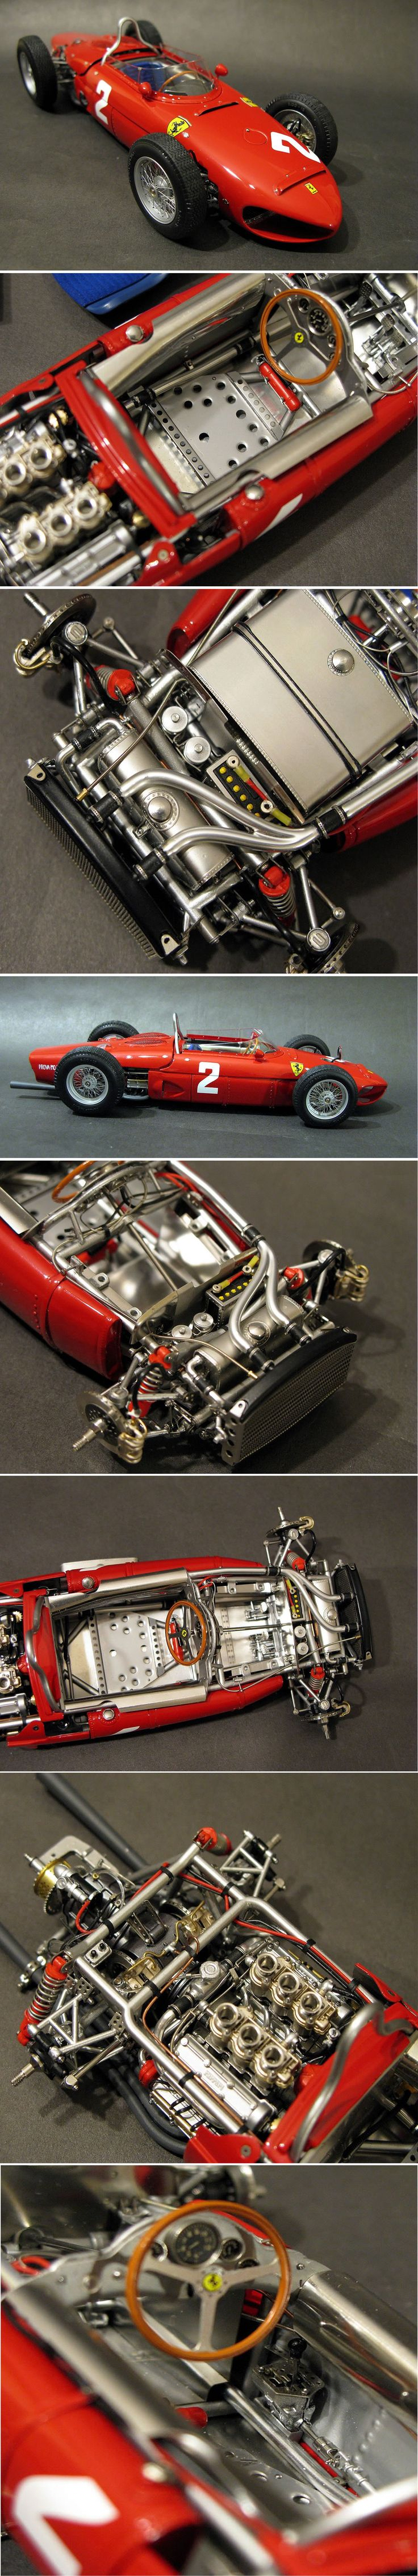 The best model cars of the World - Exoto Ferrari Tipo 156 F1 Sharknose, 1:18…